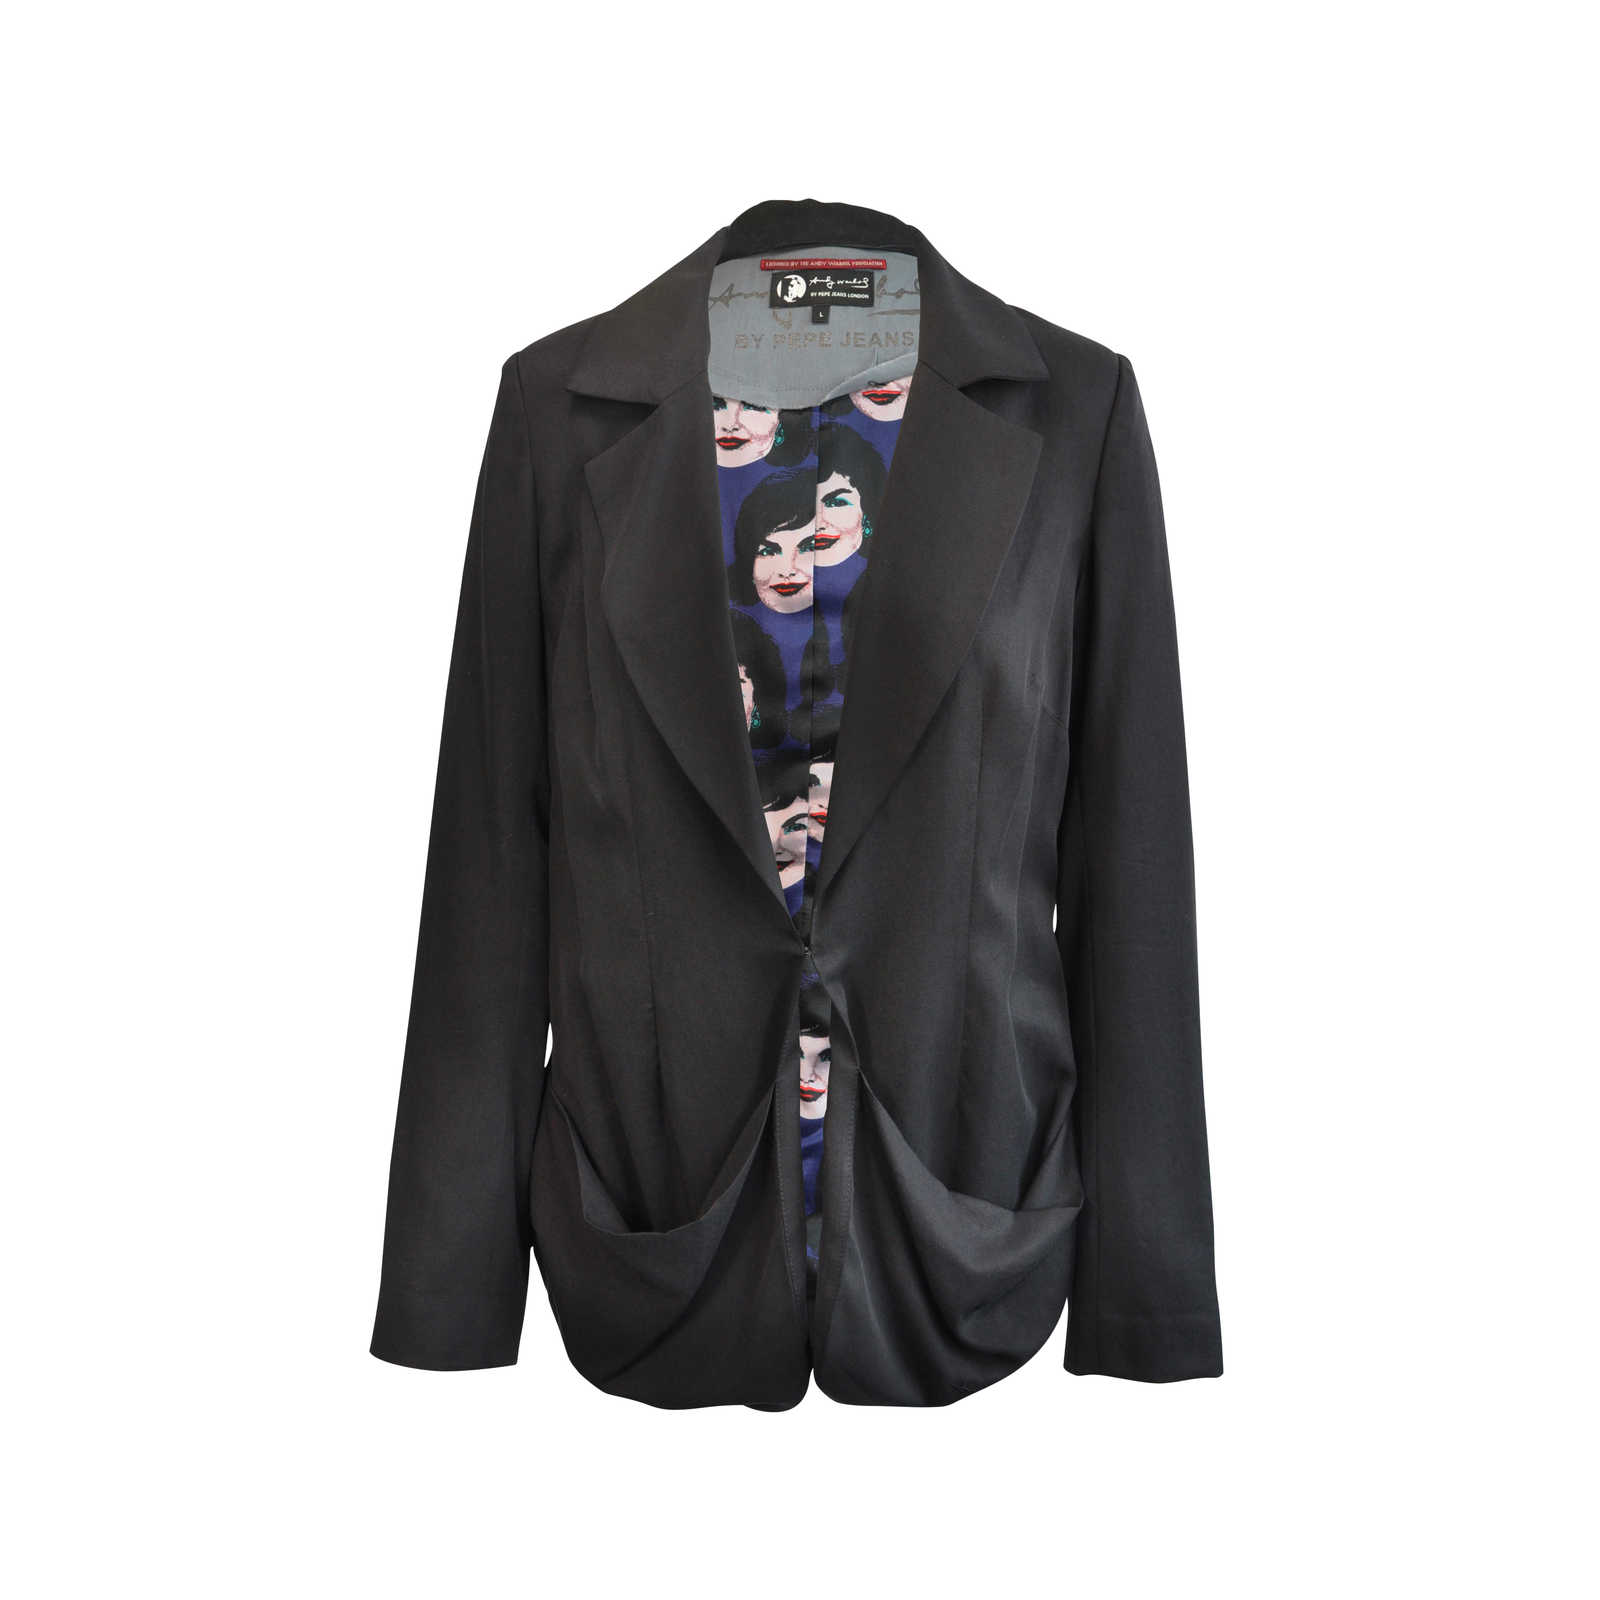 new style 5ae1d 59a80 Authentic Second Hand Pepe Jeans London Andy Warhol Blazer ...